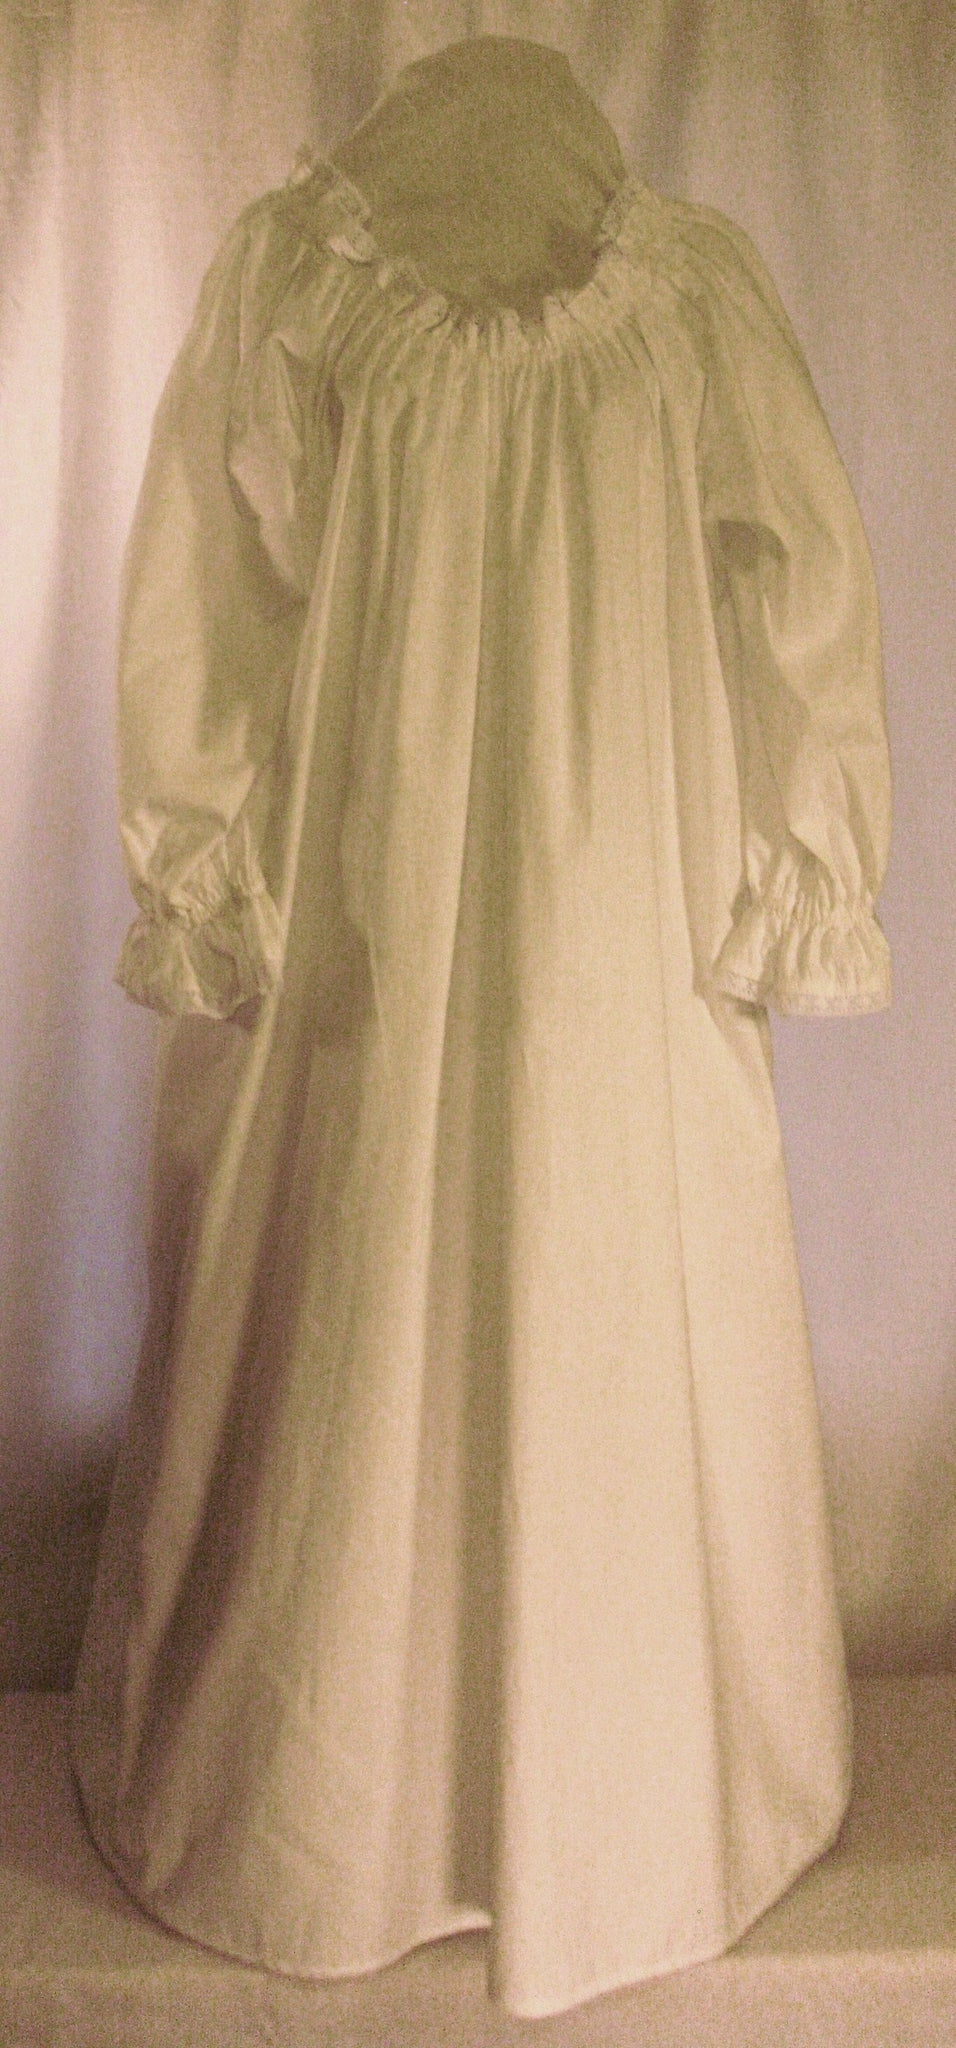 Milady's Chemise w/ lace for Women - White Pavilion Costumers